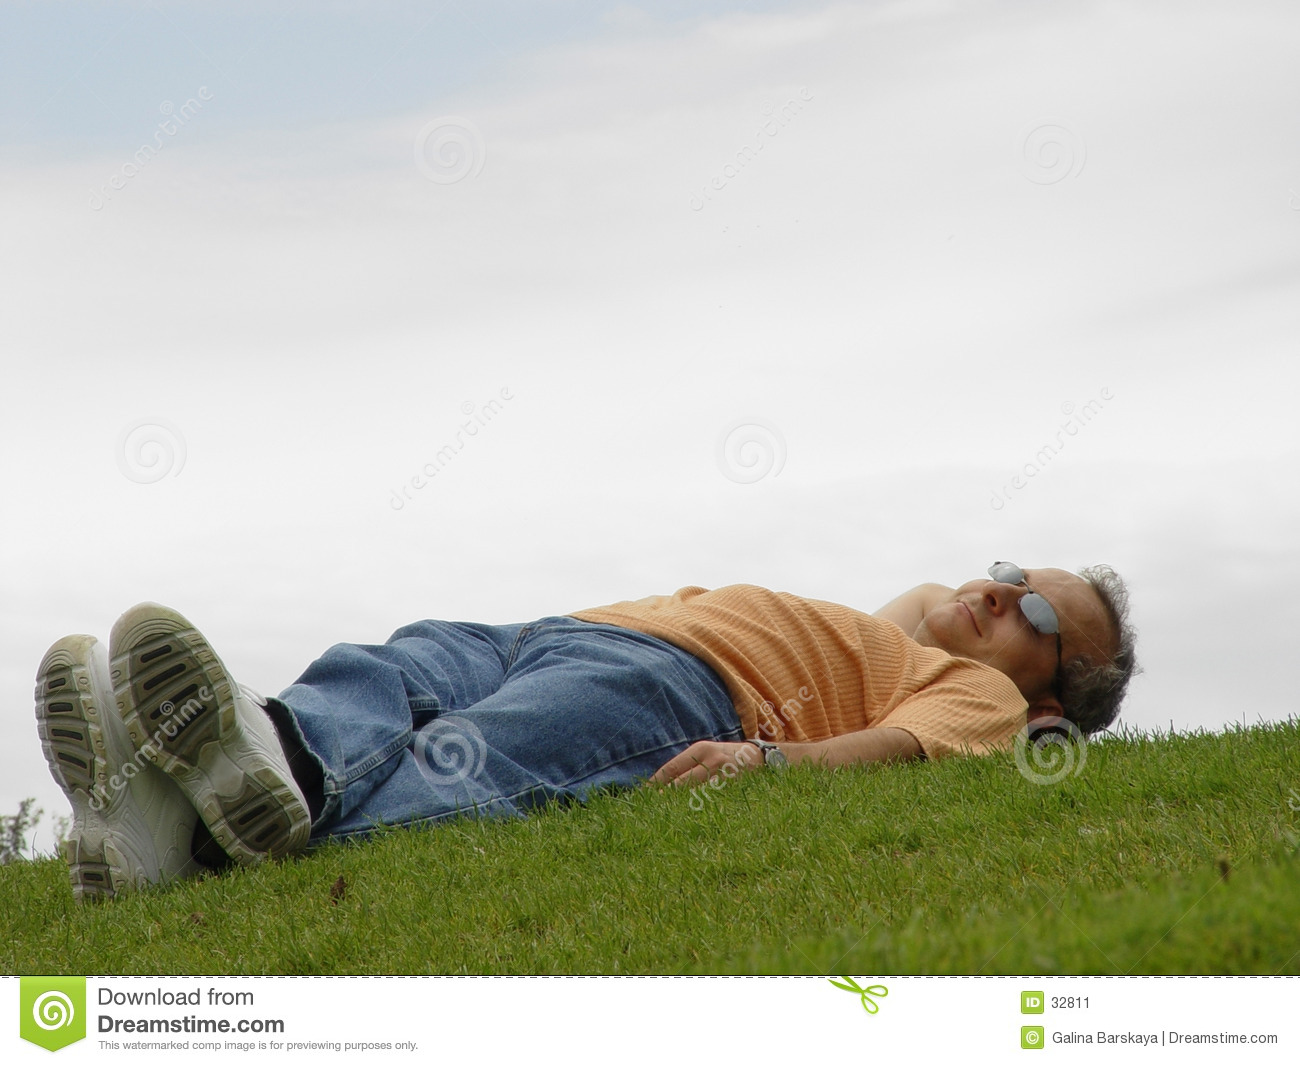 A man lying on the grass